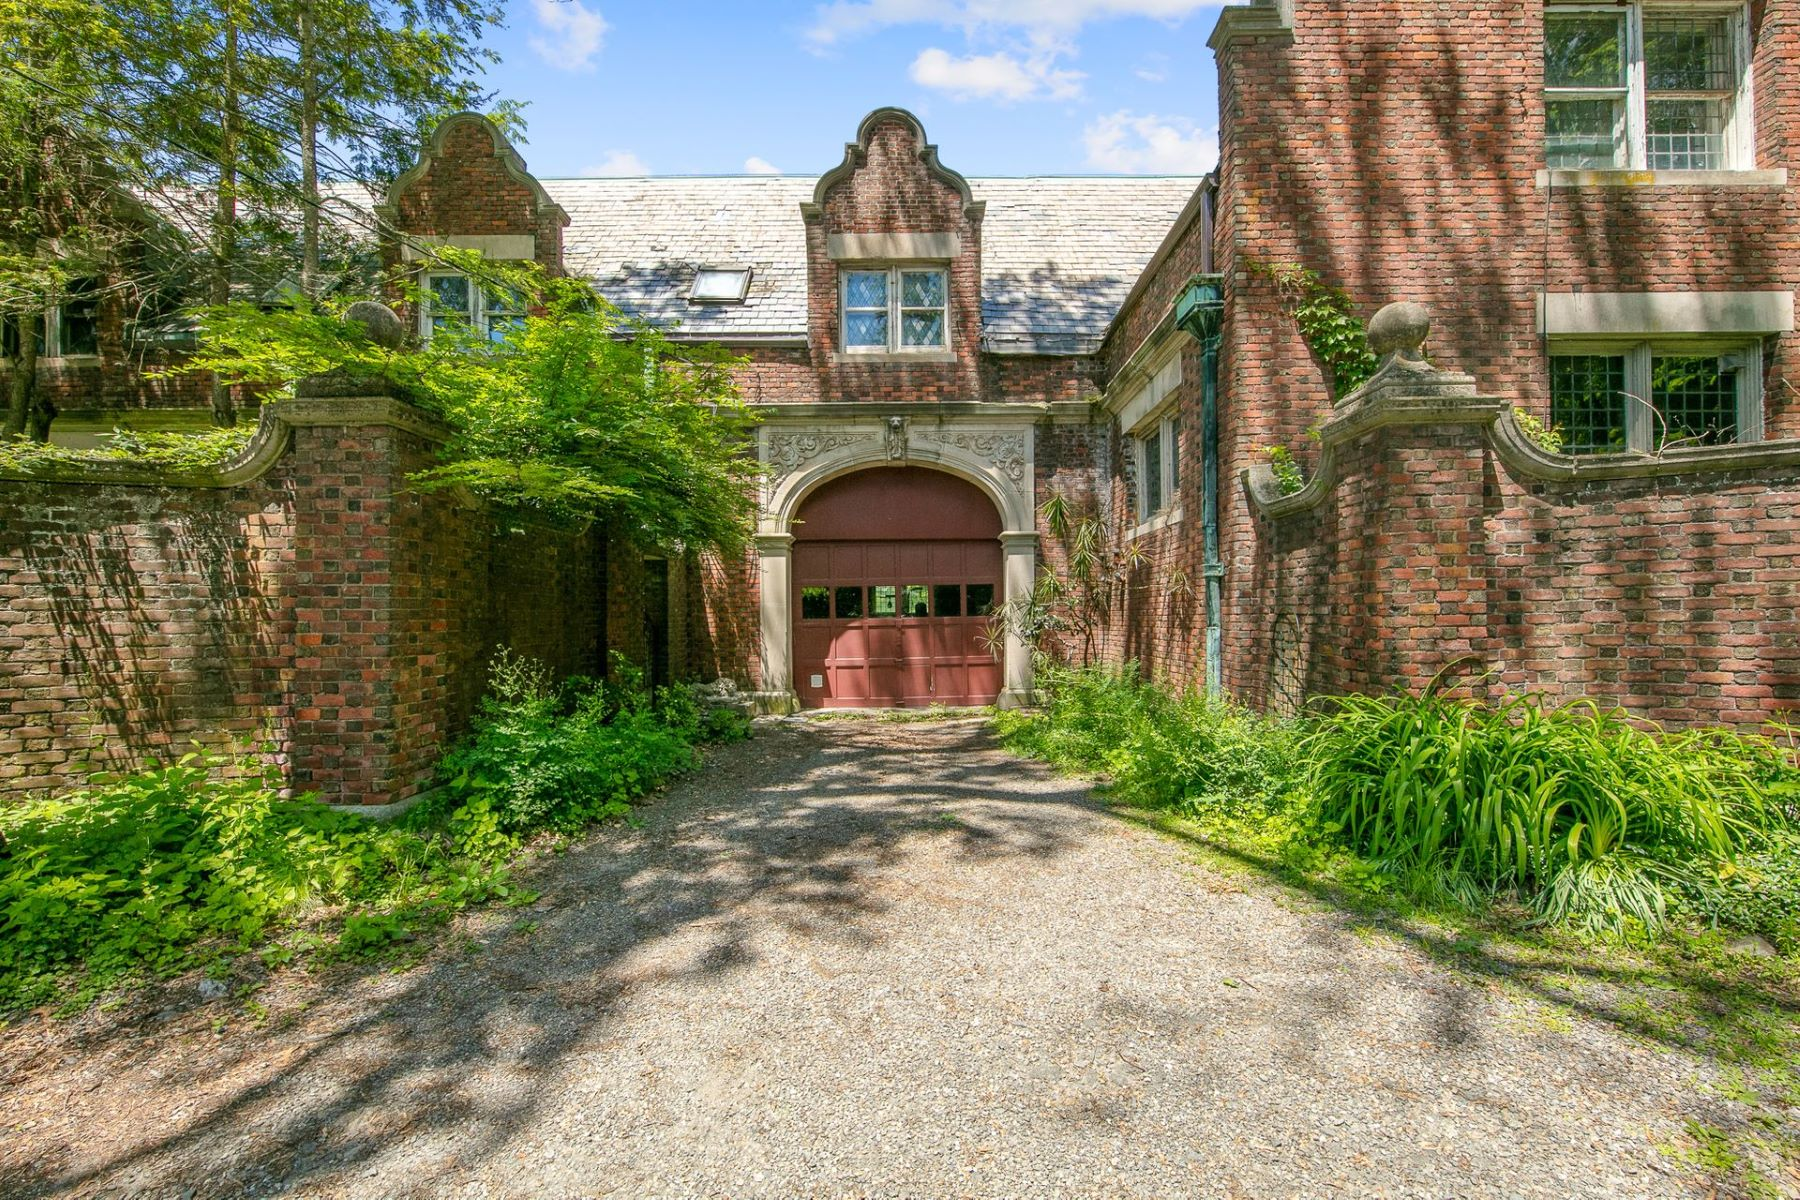 Single Family Homes for Sale at Historic Henry V Poor Carriage House 72 Circuit Road Tuxedo Park, New York 10987 United States